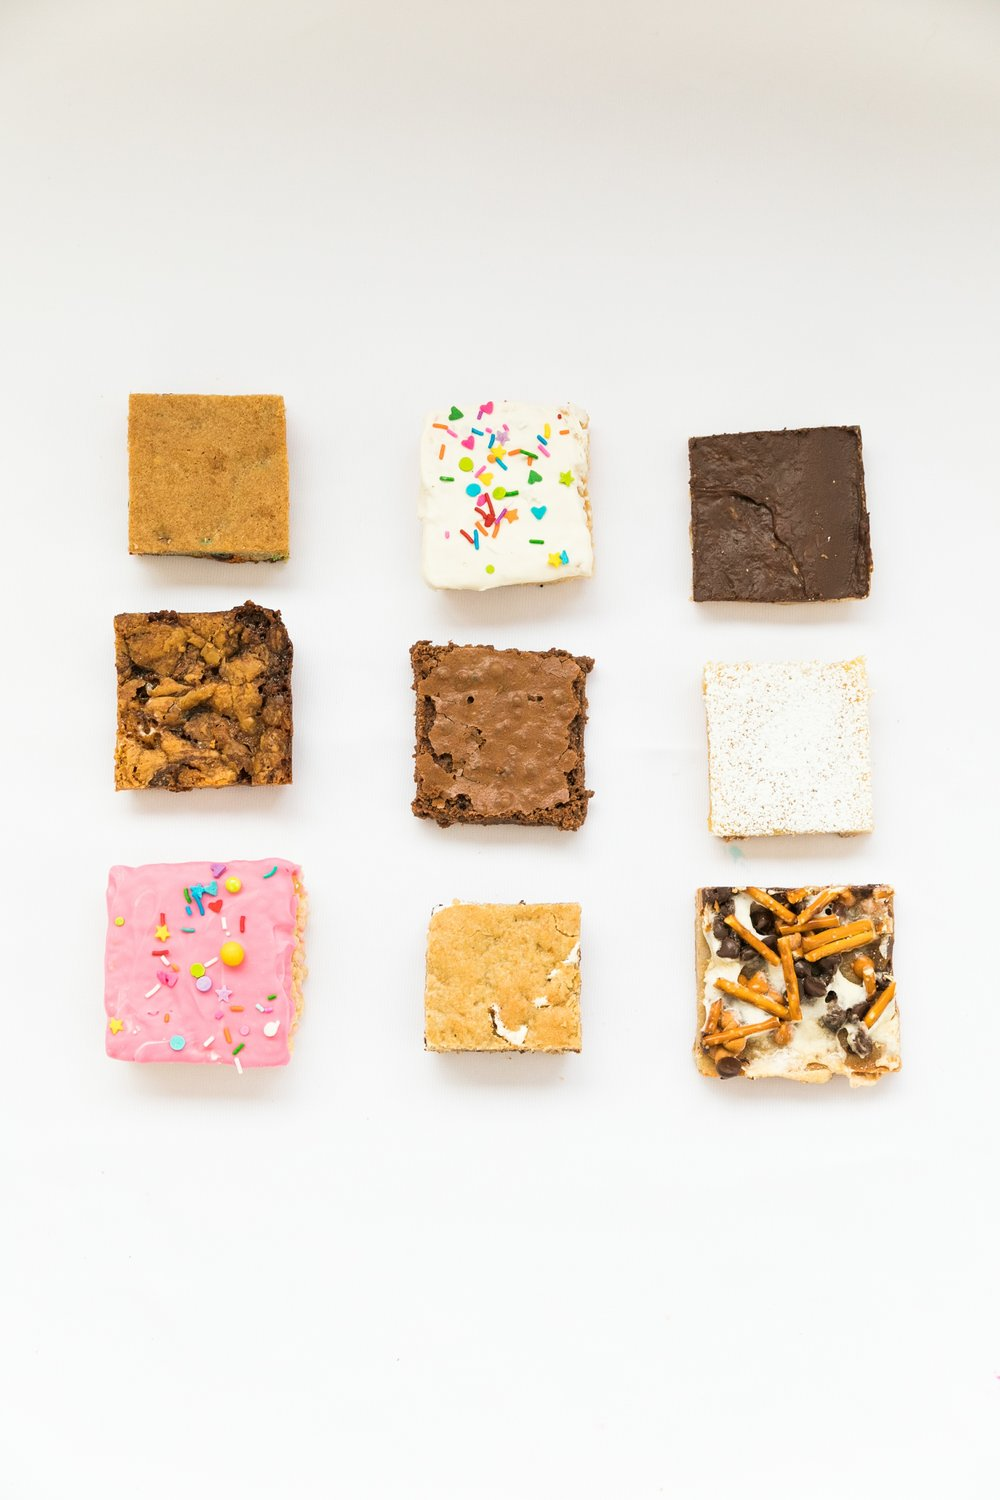 Delish bars in a variety of flavors with rice krispies treats, Marshmallow pizza bars, smores bars, and lemon bars